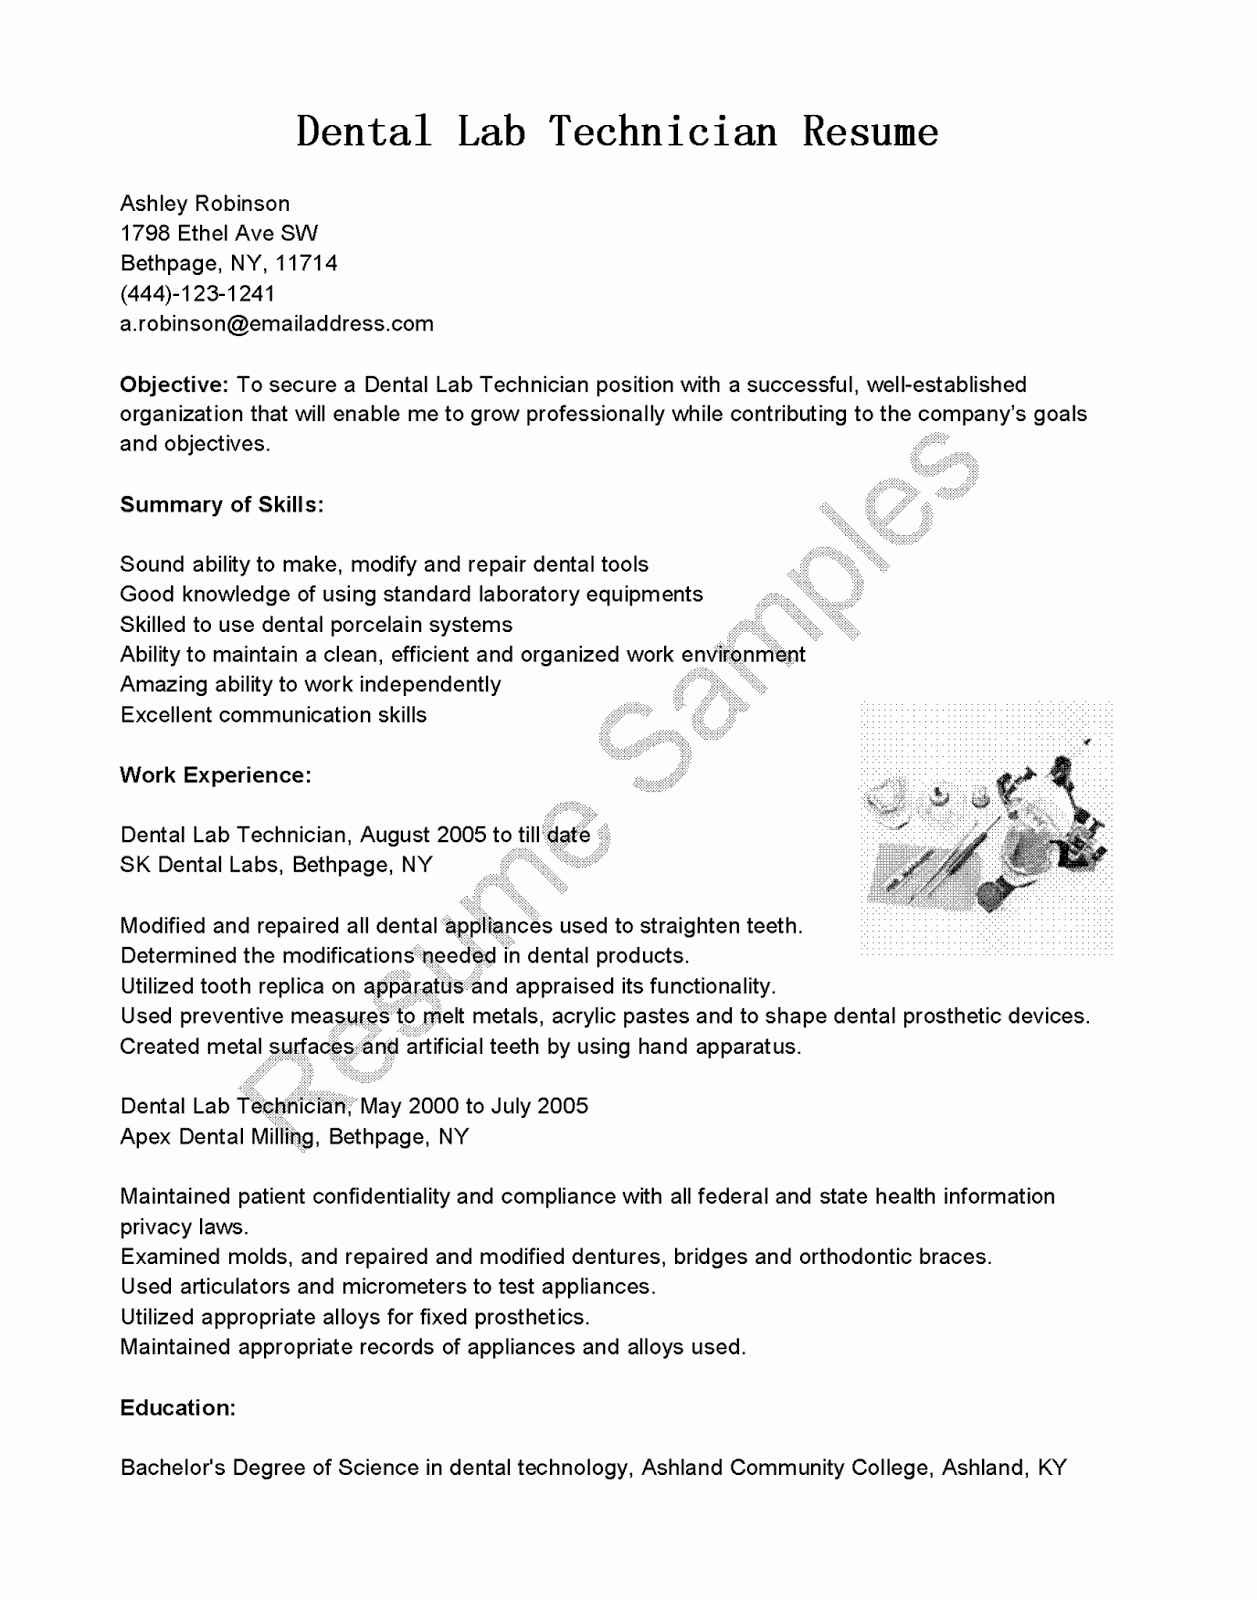 Collaborated Synonym - Collaborate Synonym Resume